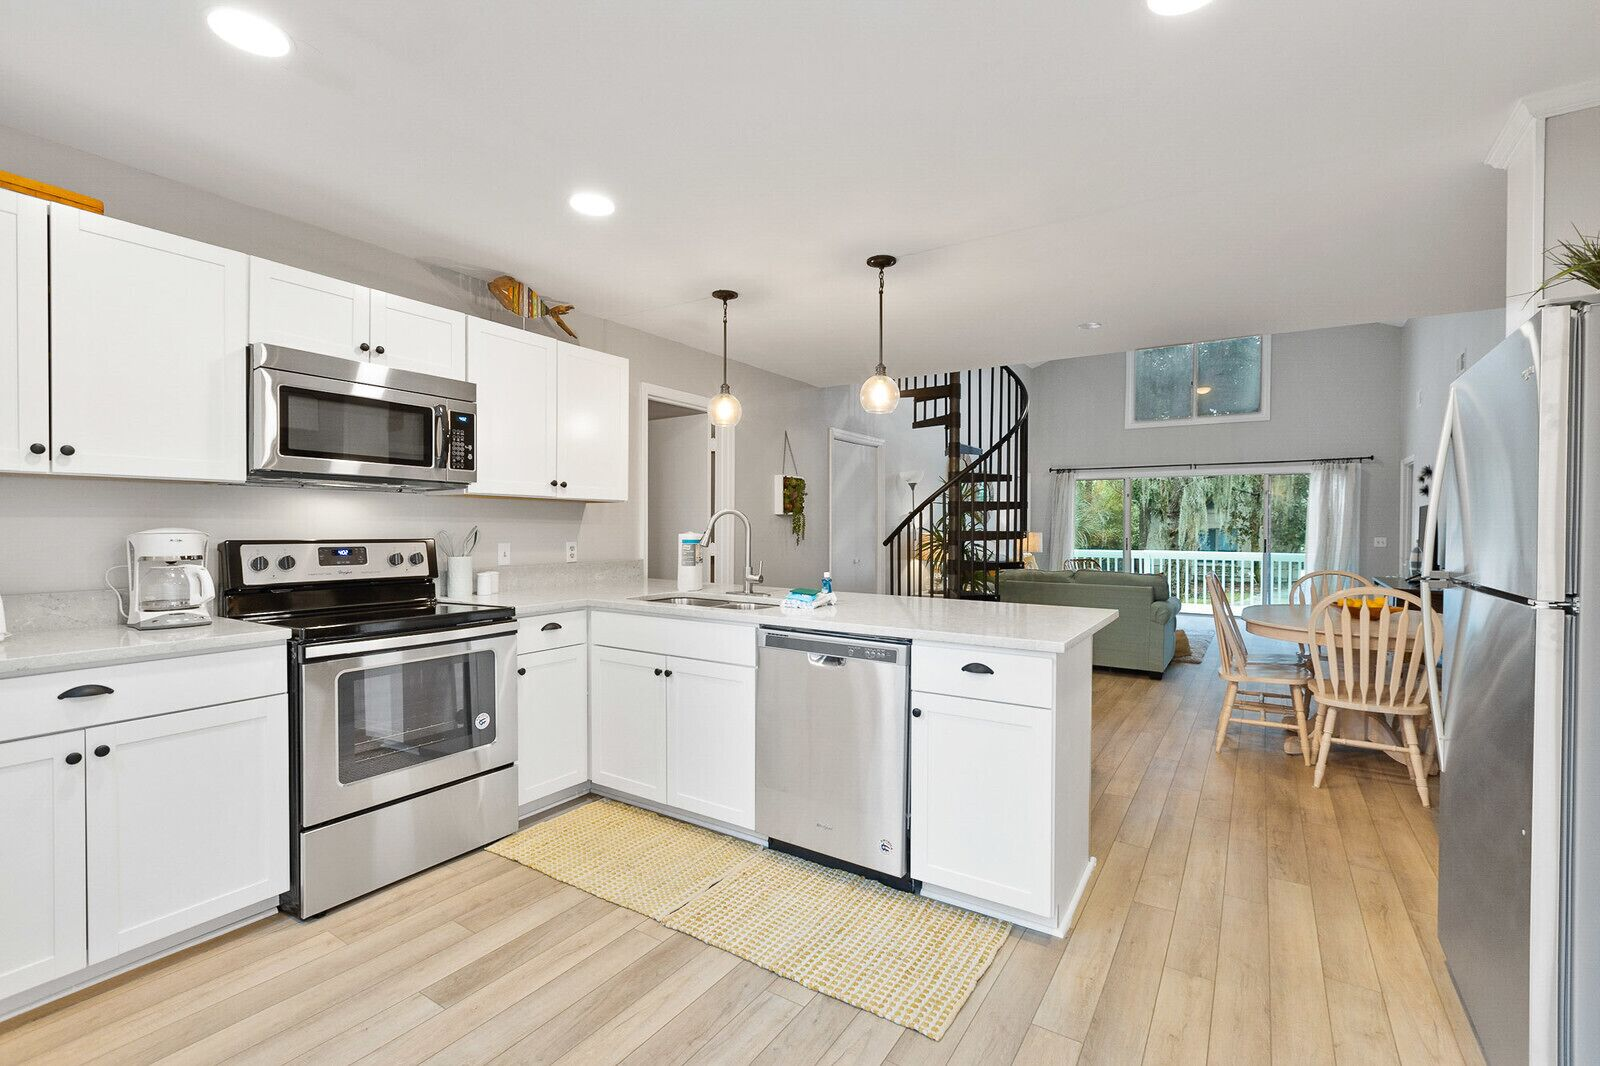 2nd Row Newly Remodeled 4 Bed Bath Beach House Pet Friendly With Private Pool Hilton Head Island Usa Expedia Dk